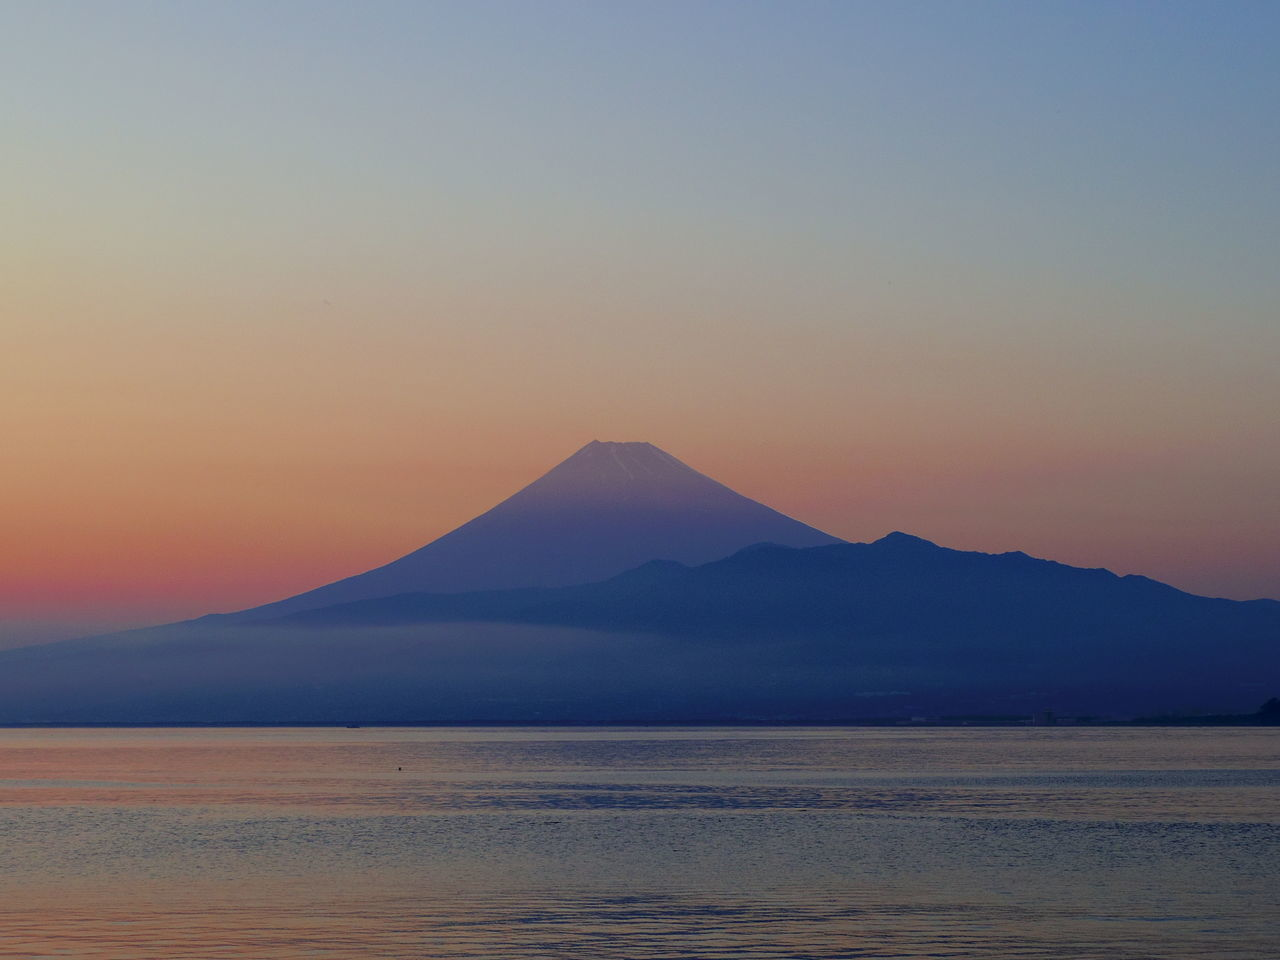 Scenic View Of Sea By Silhouette Mountains Against Sky During Sunset